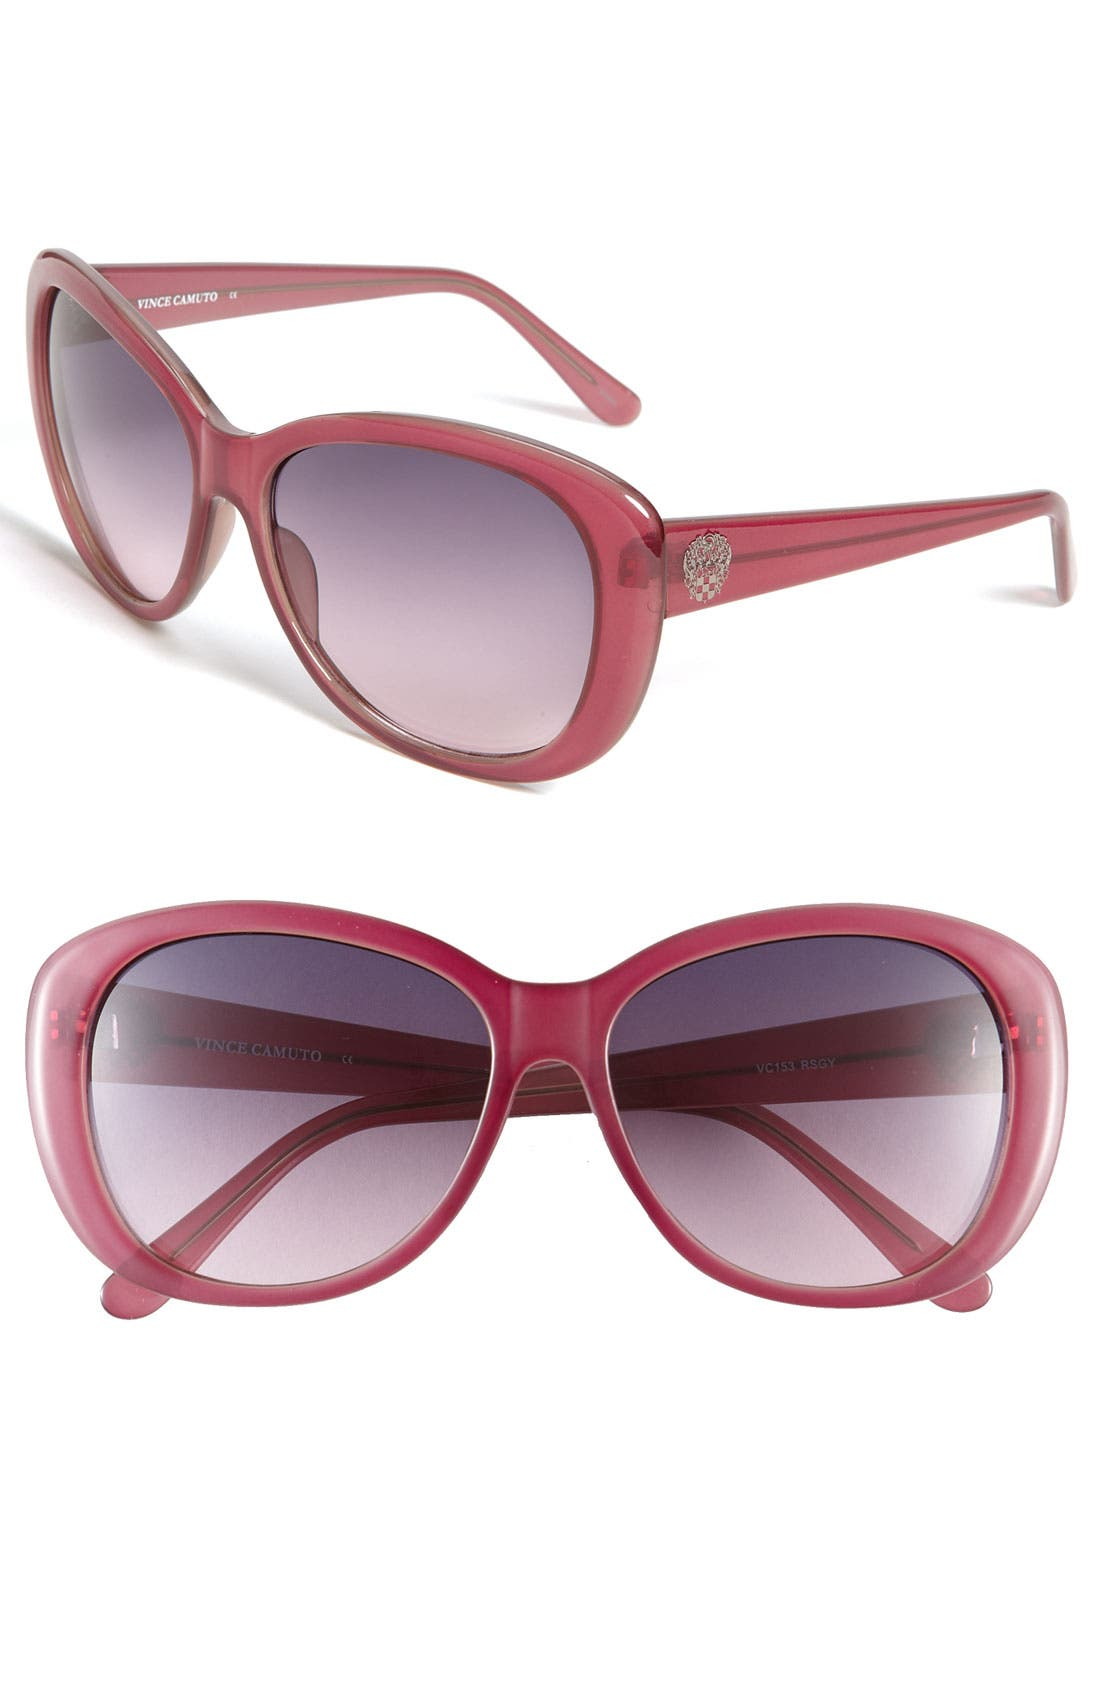 Alternate Image 1 Selected - Vince Camuto Plastic Sunglasses